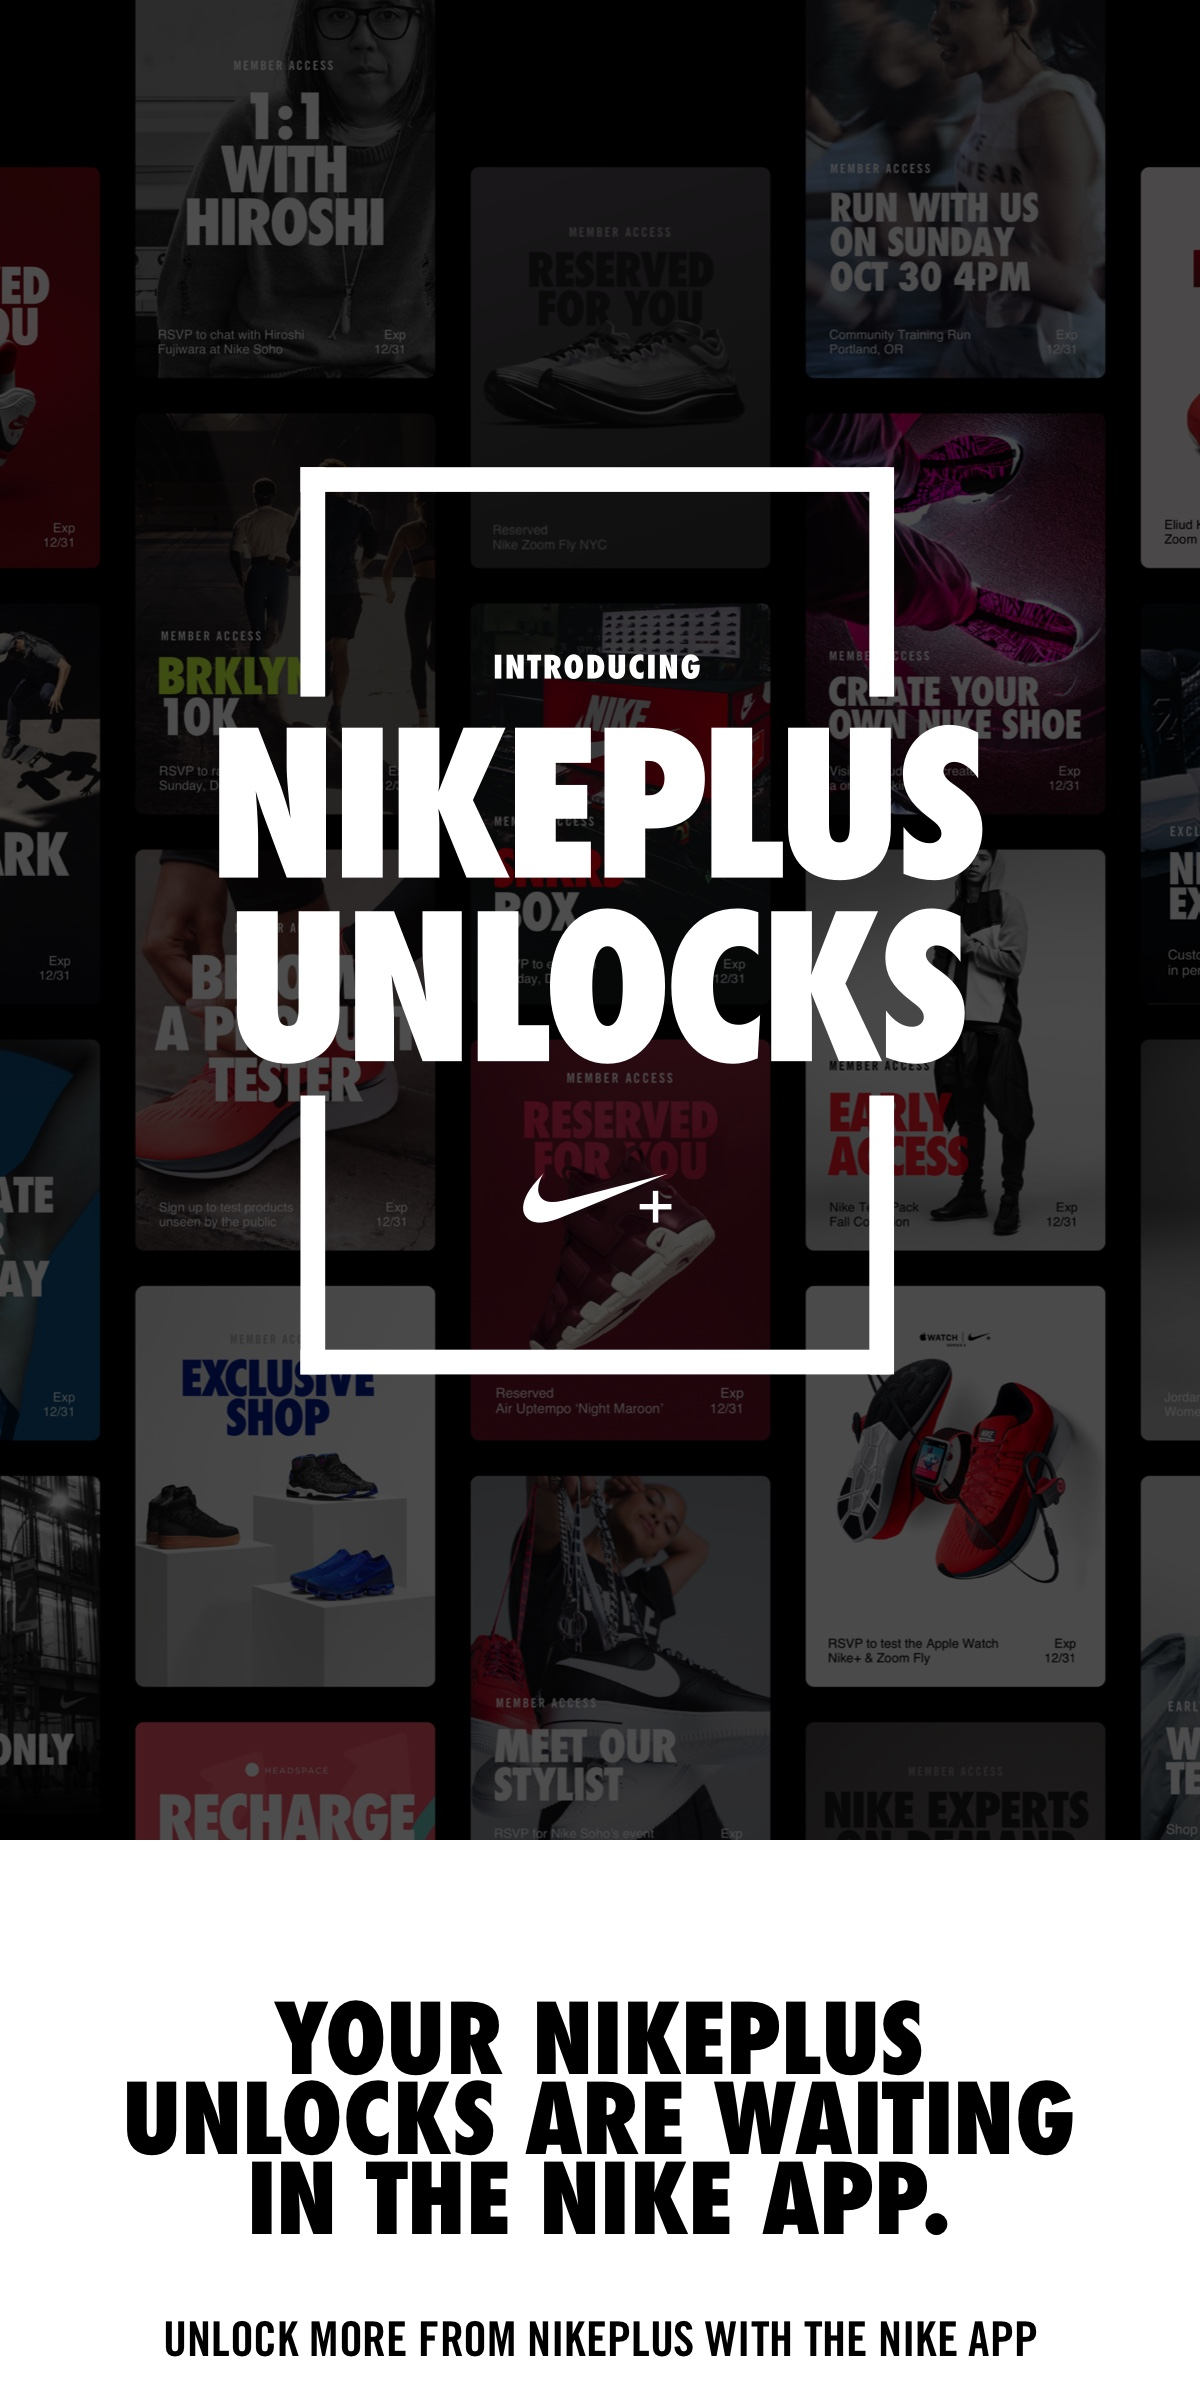 chaussures de sport ccb22 28fff Nike: Introducing NikePlus Unlocks 🔑 | Milled